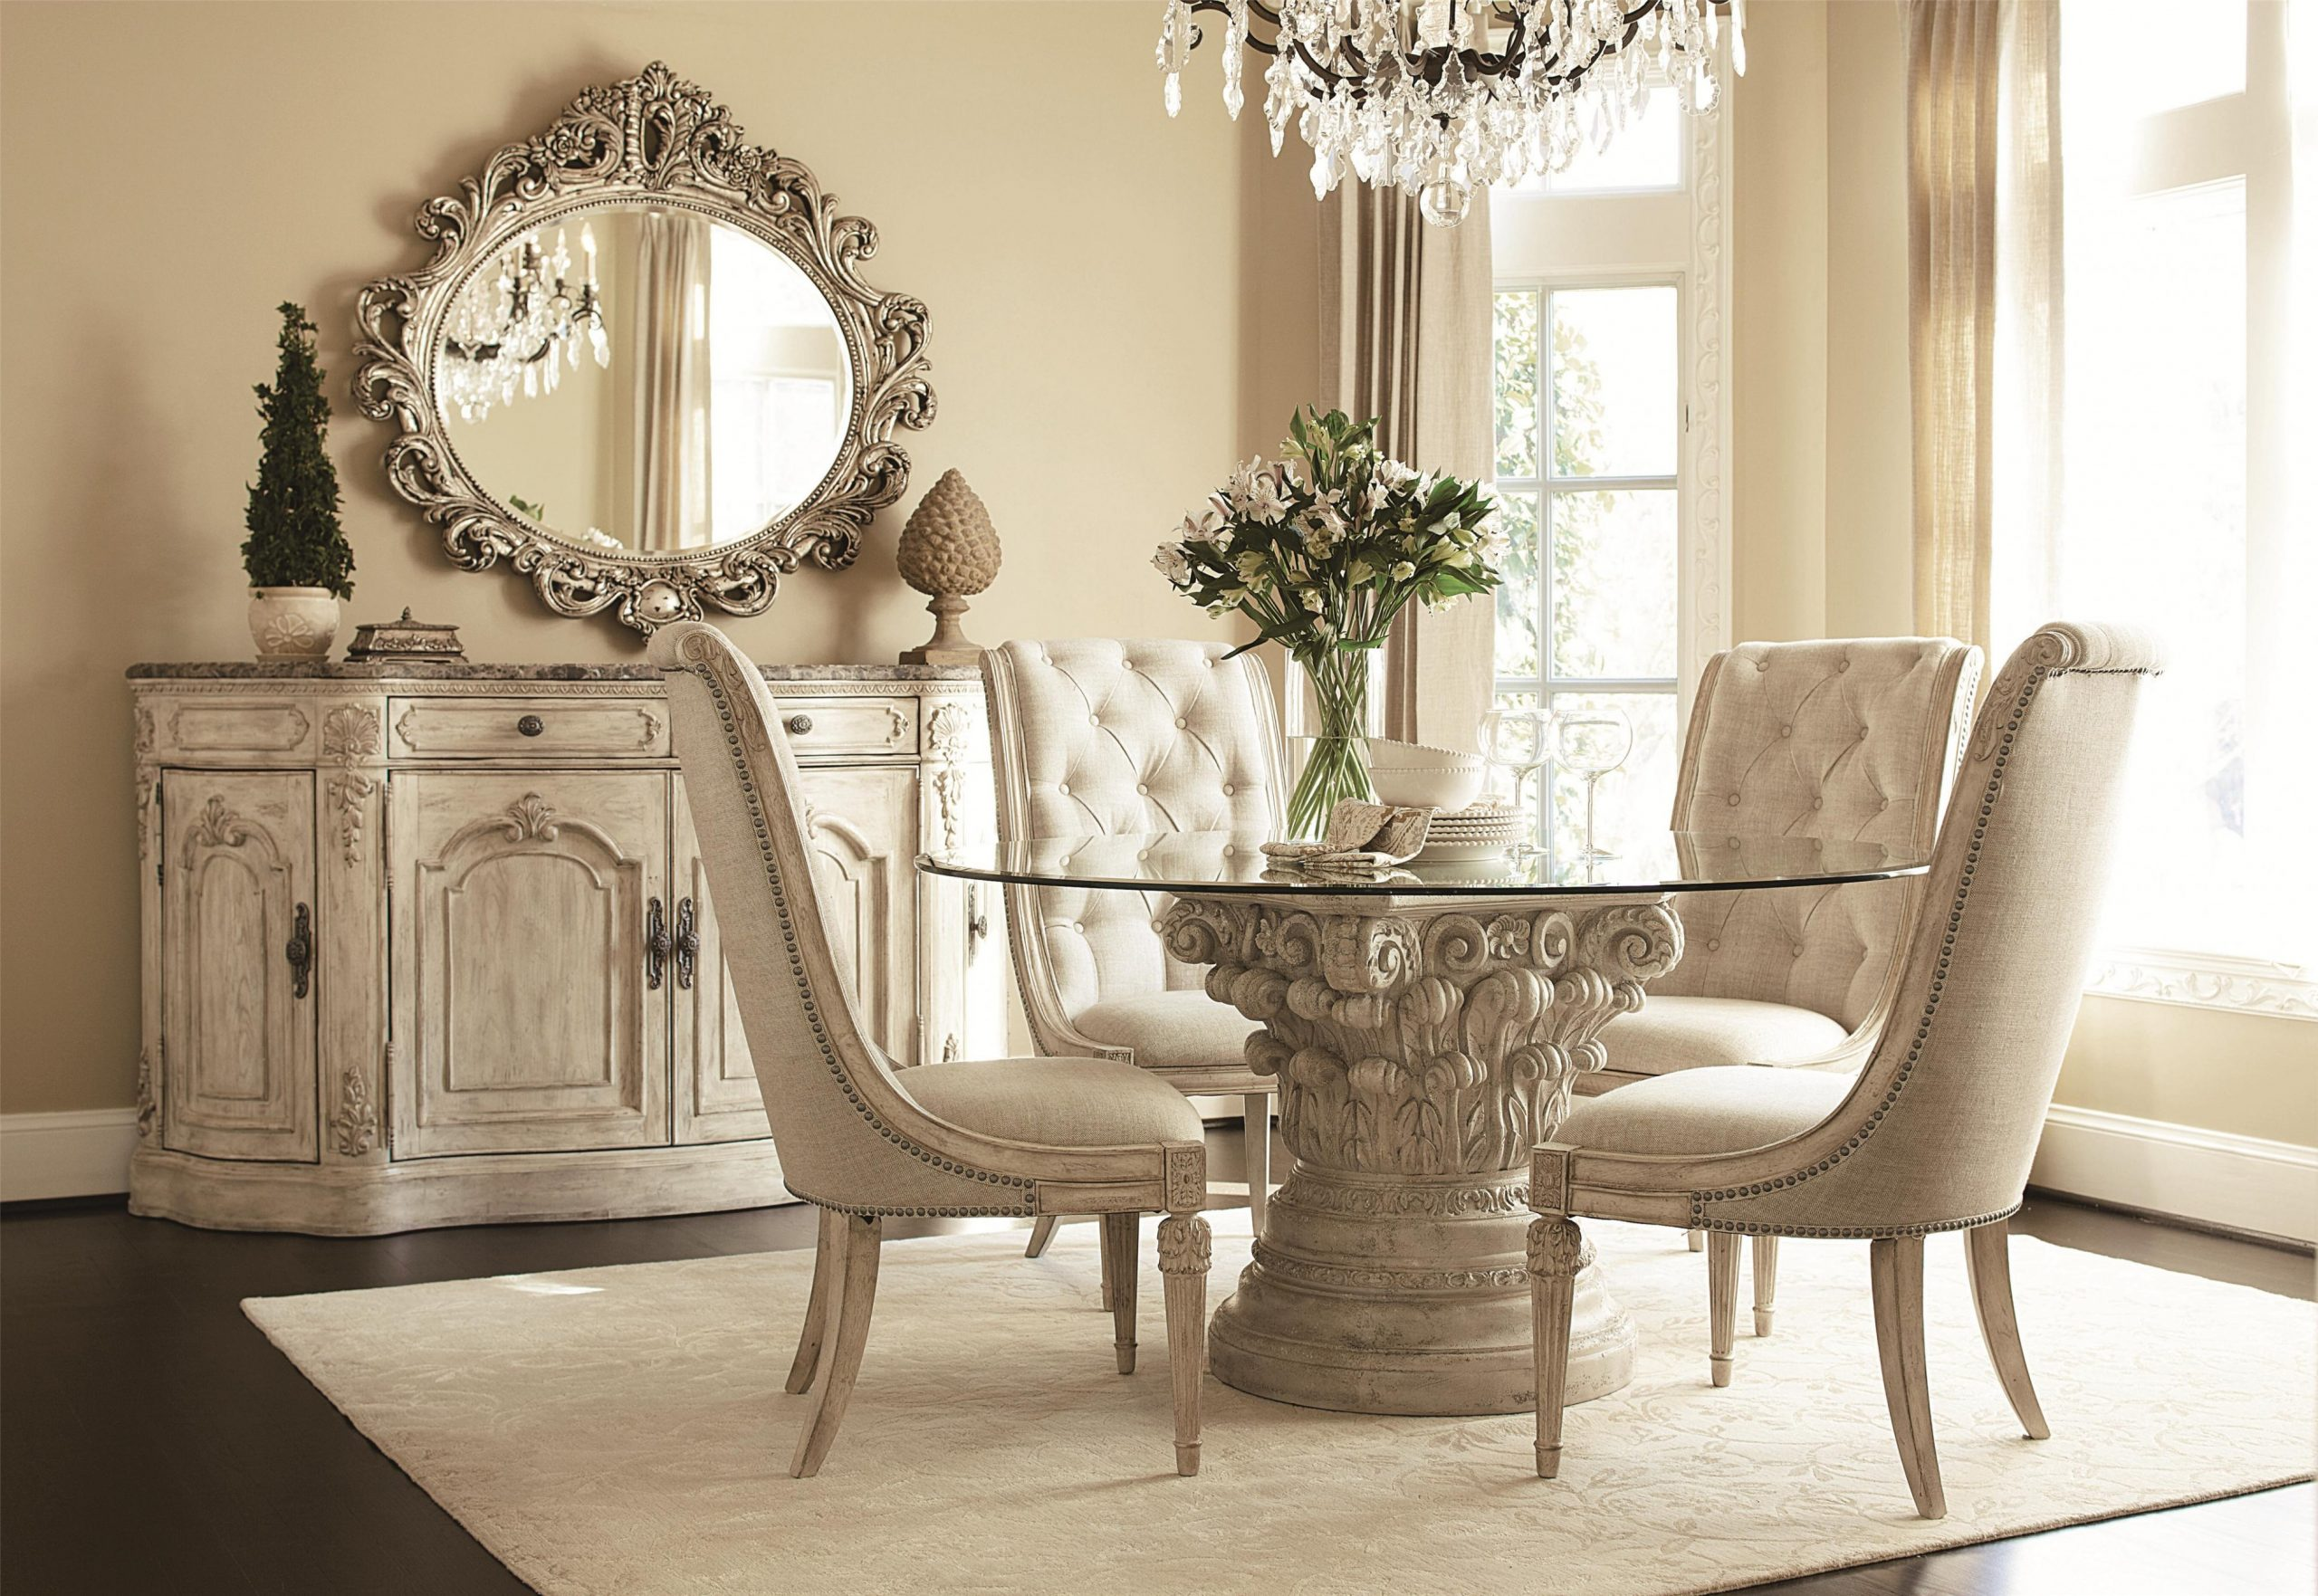 11 Rugs That Showcase Their Power Under the Dining Table - Dining Room Ideas Cream